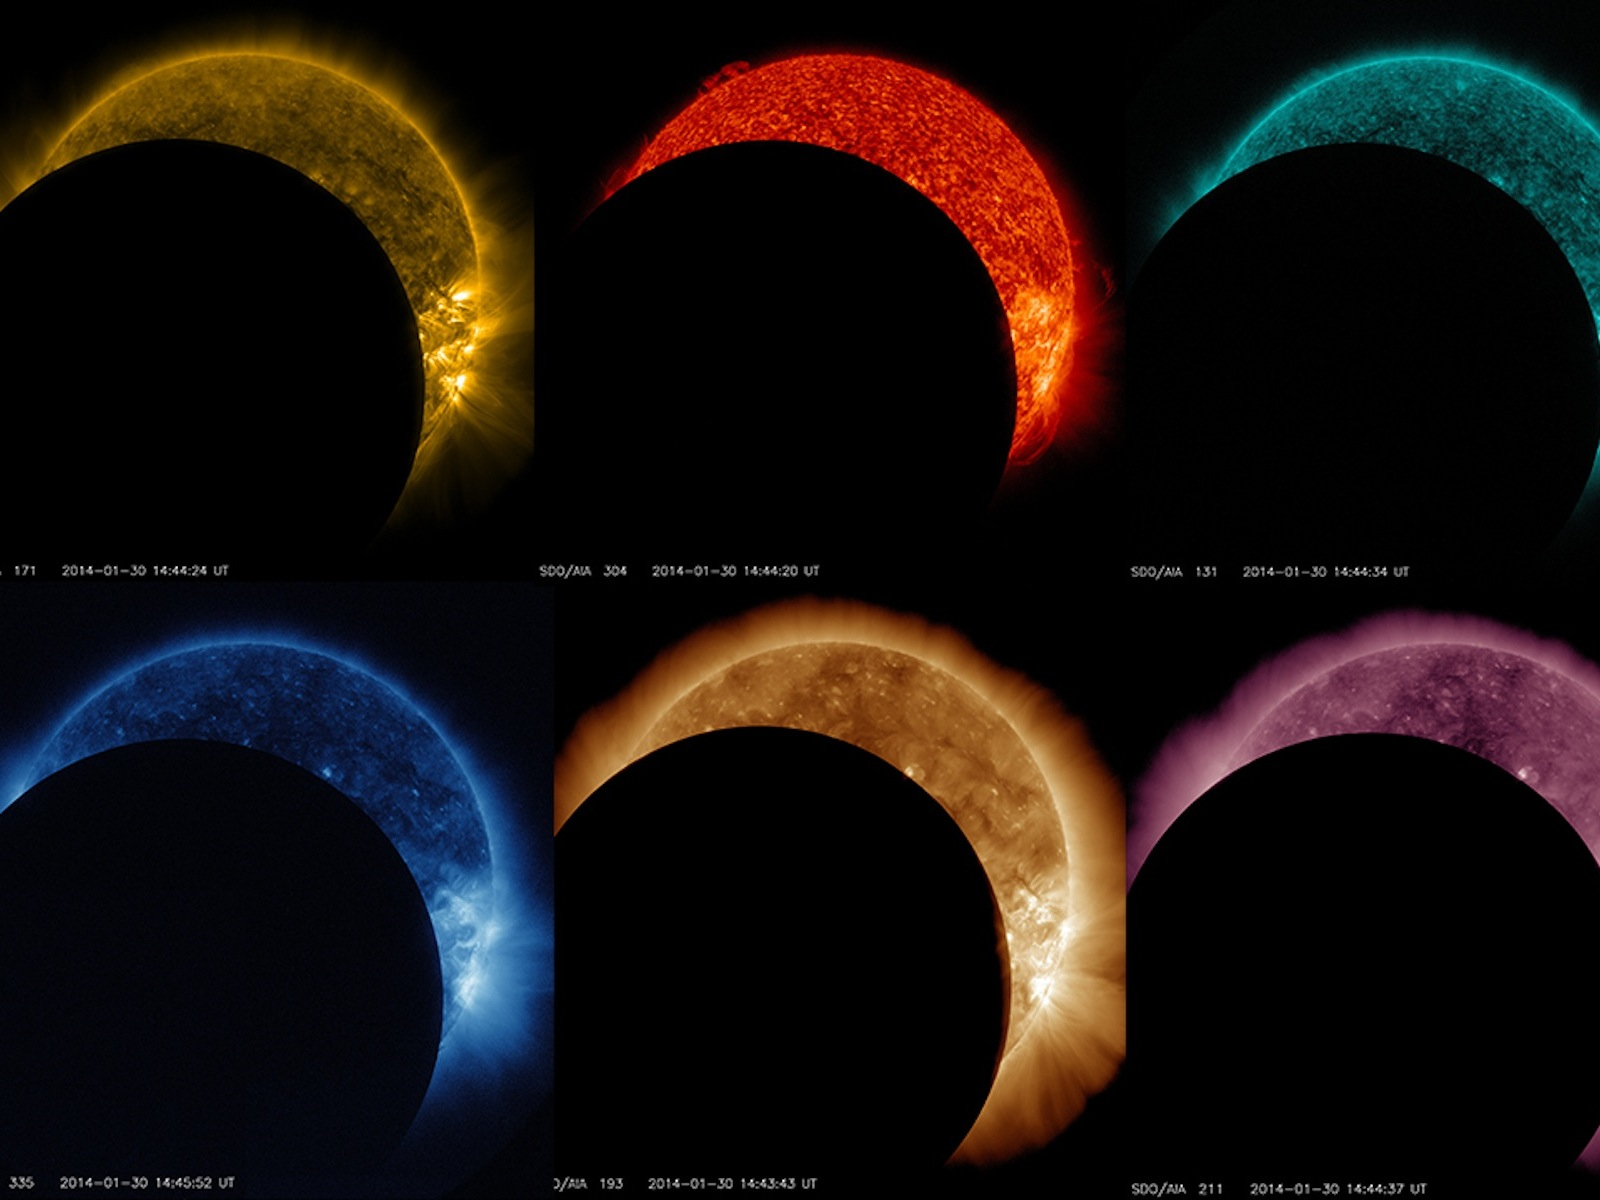 Rainbow of Lunar Transits | Space Wallpaper